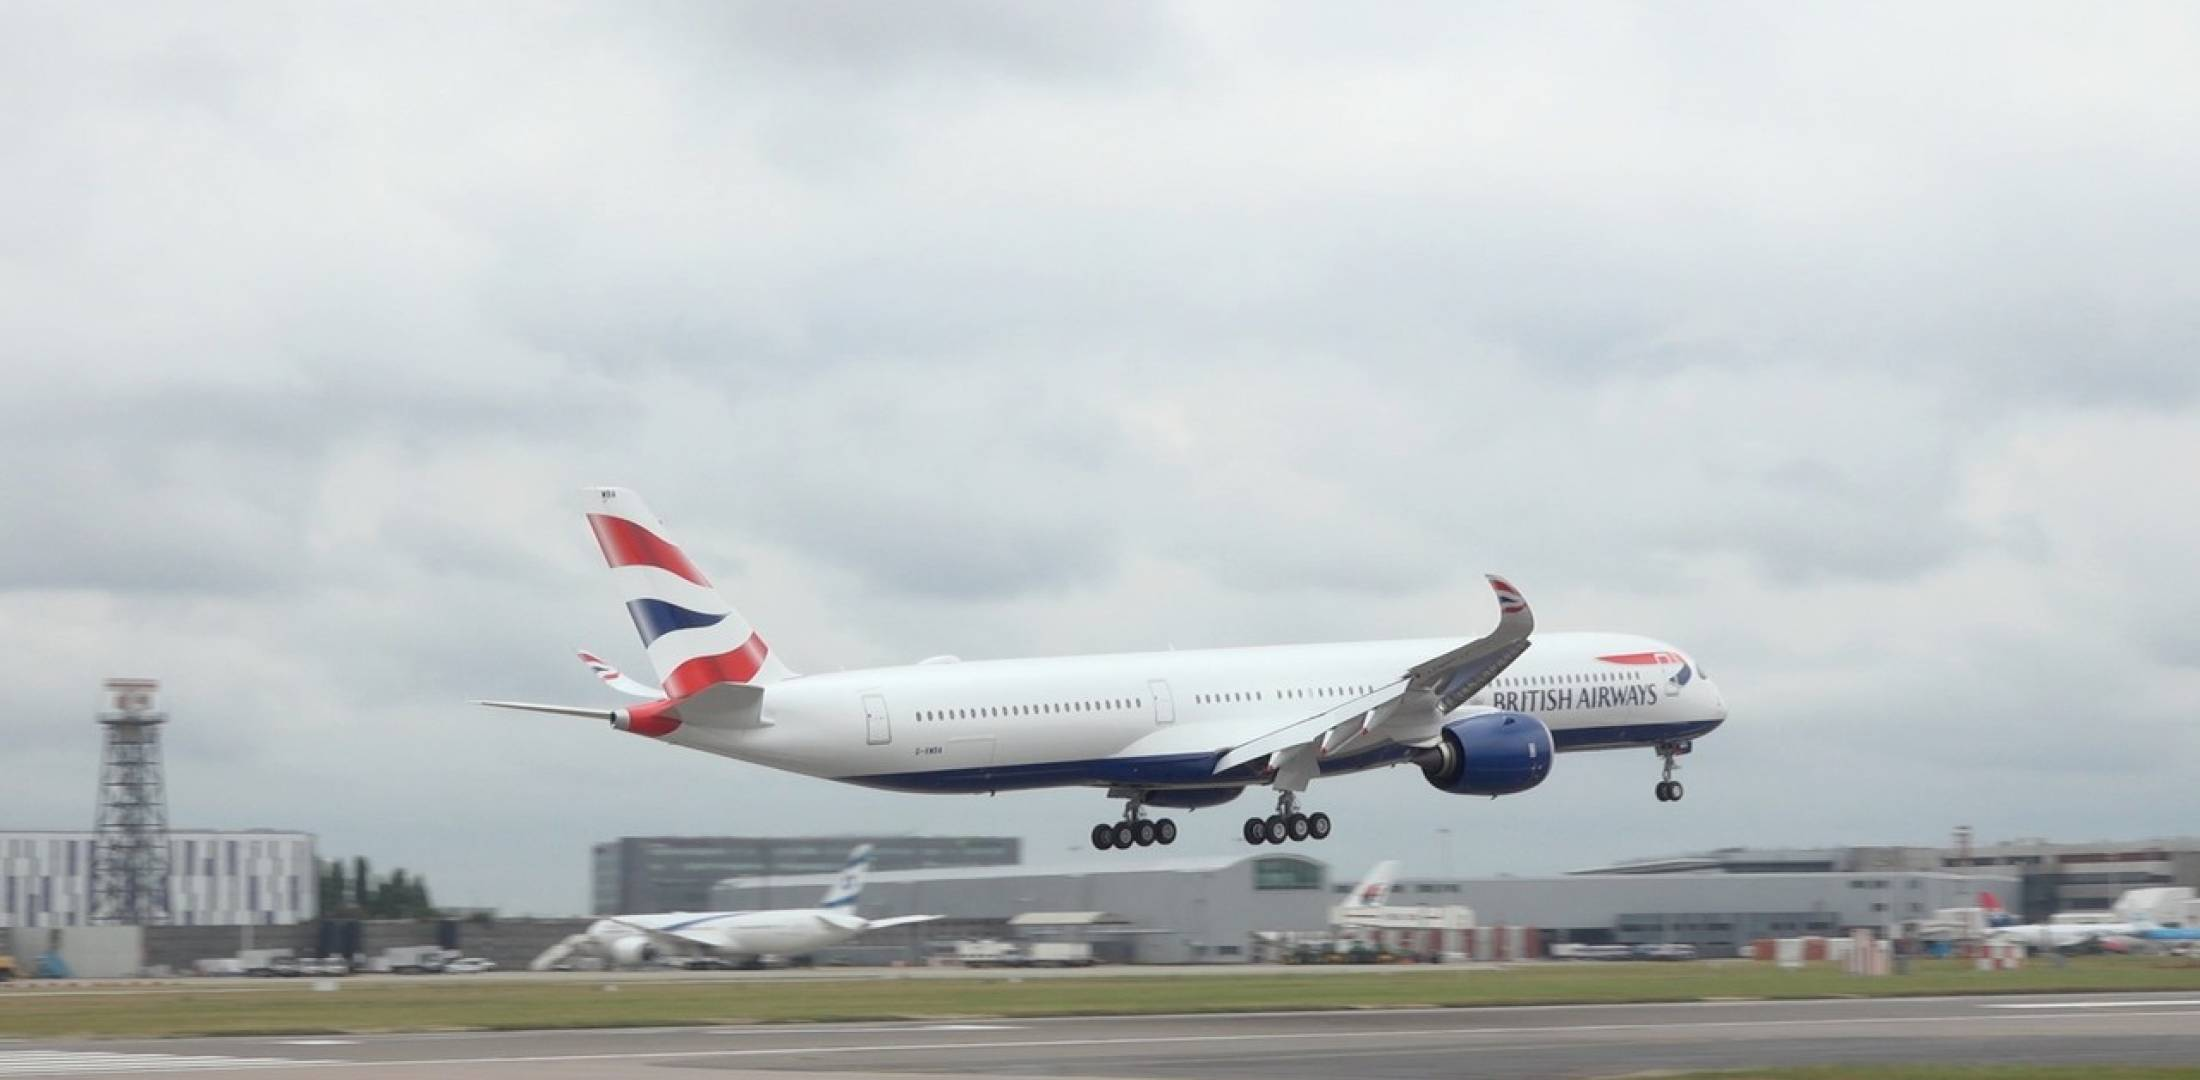 British Airways A350 at London Heathrow Airport